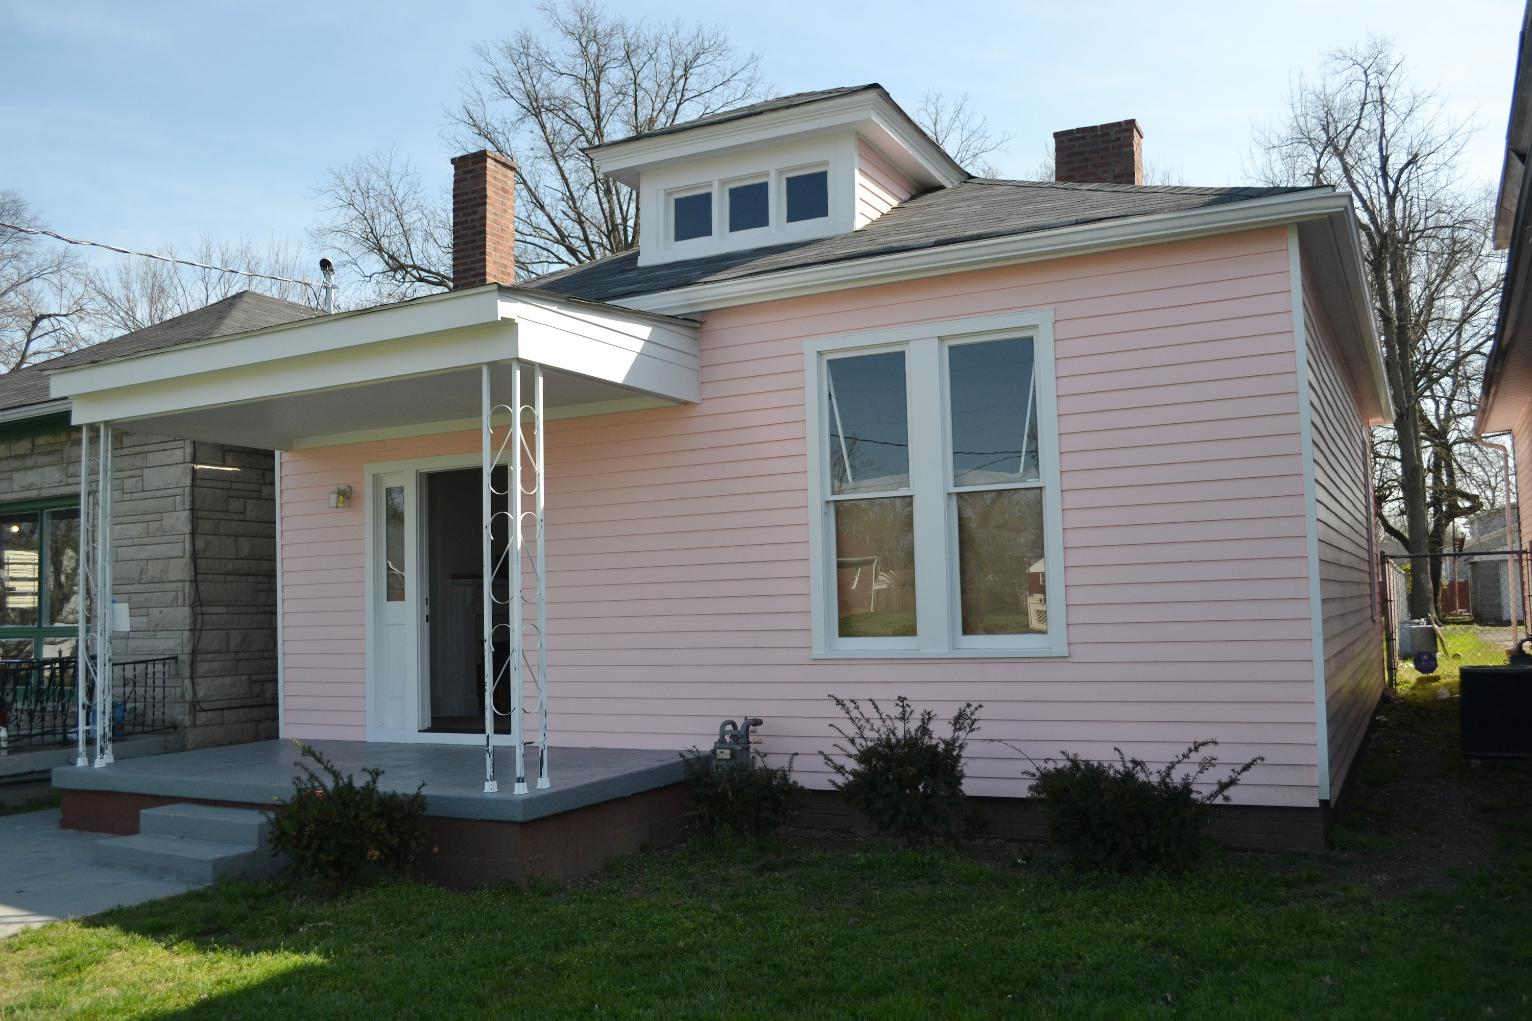 Muhammad Alis Boyhood Home Restored To Be Open To Public